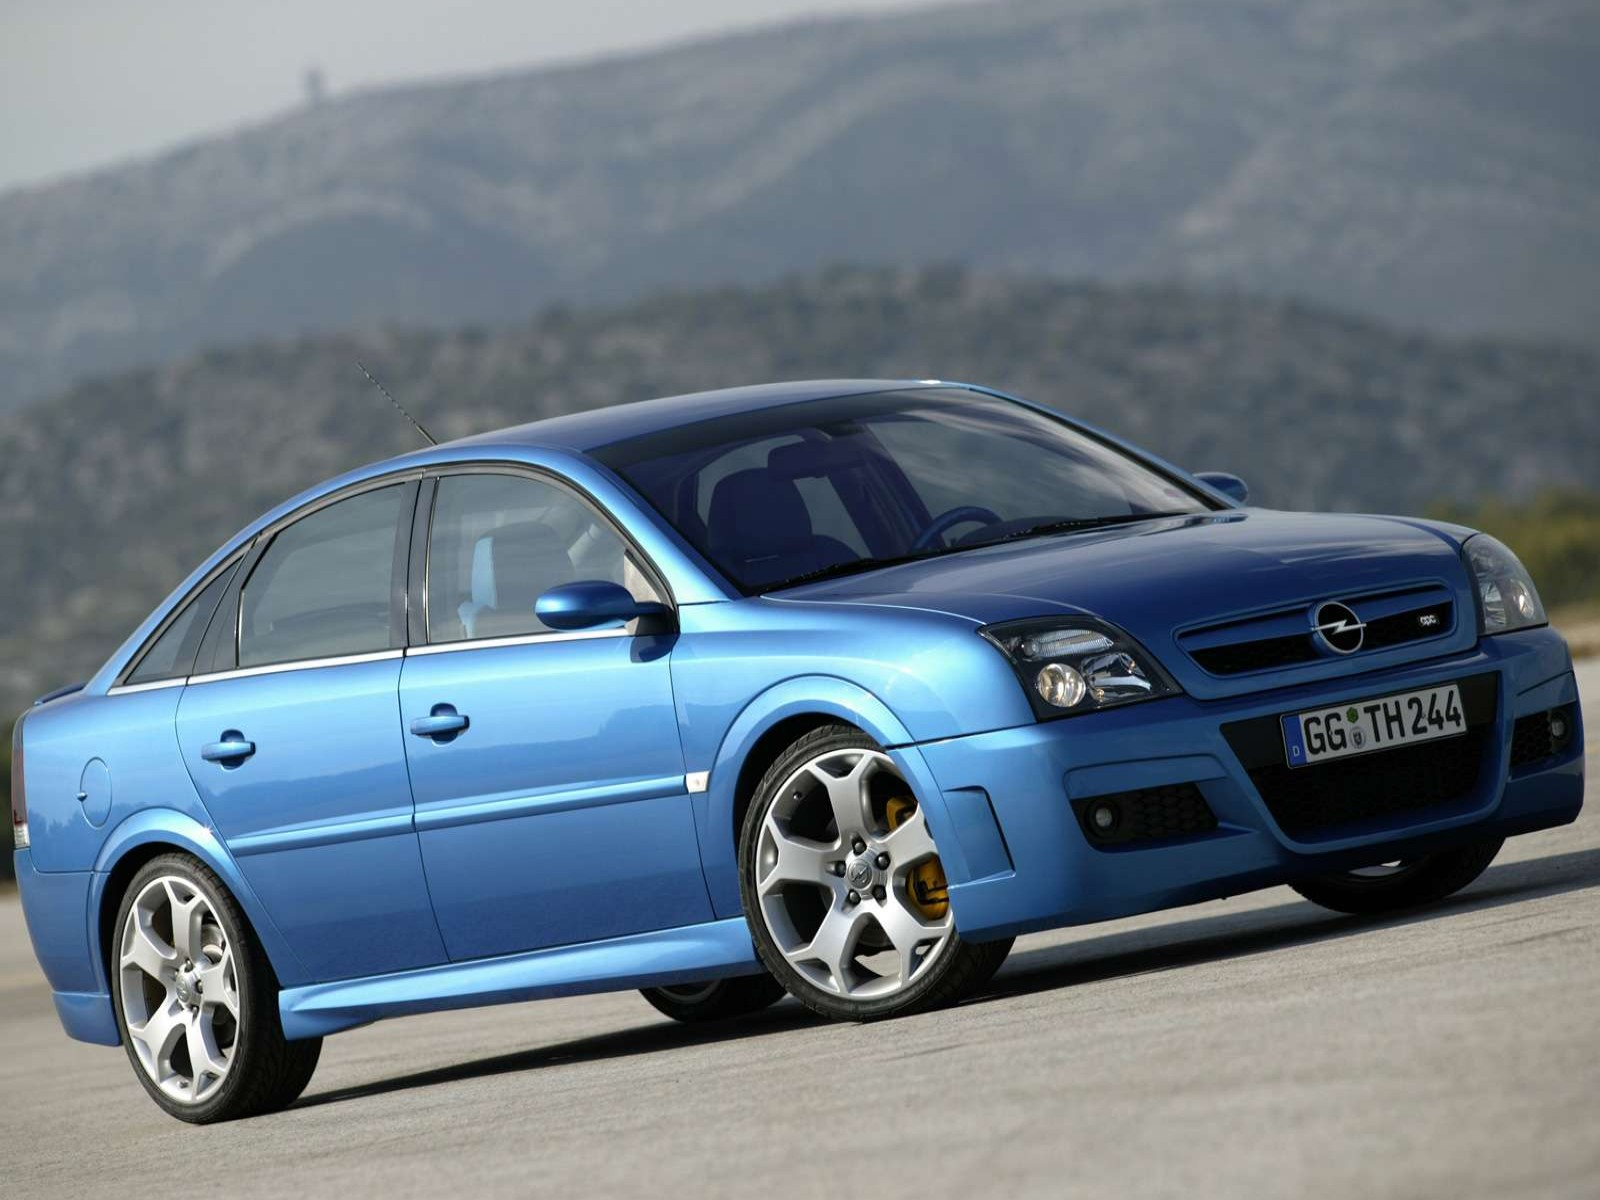 car and car zone opel vectra opc twin turbo 2005 new cars car reviews car pictures and auto. Black Bedroom Furniture Sets. Home Design Ideas